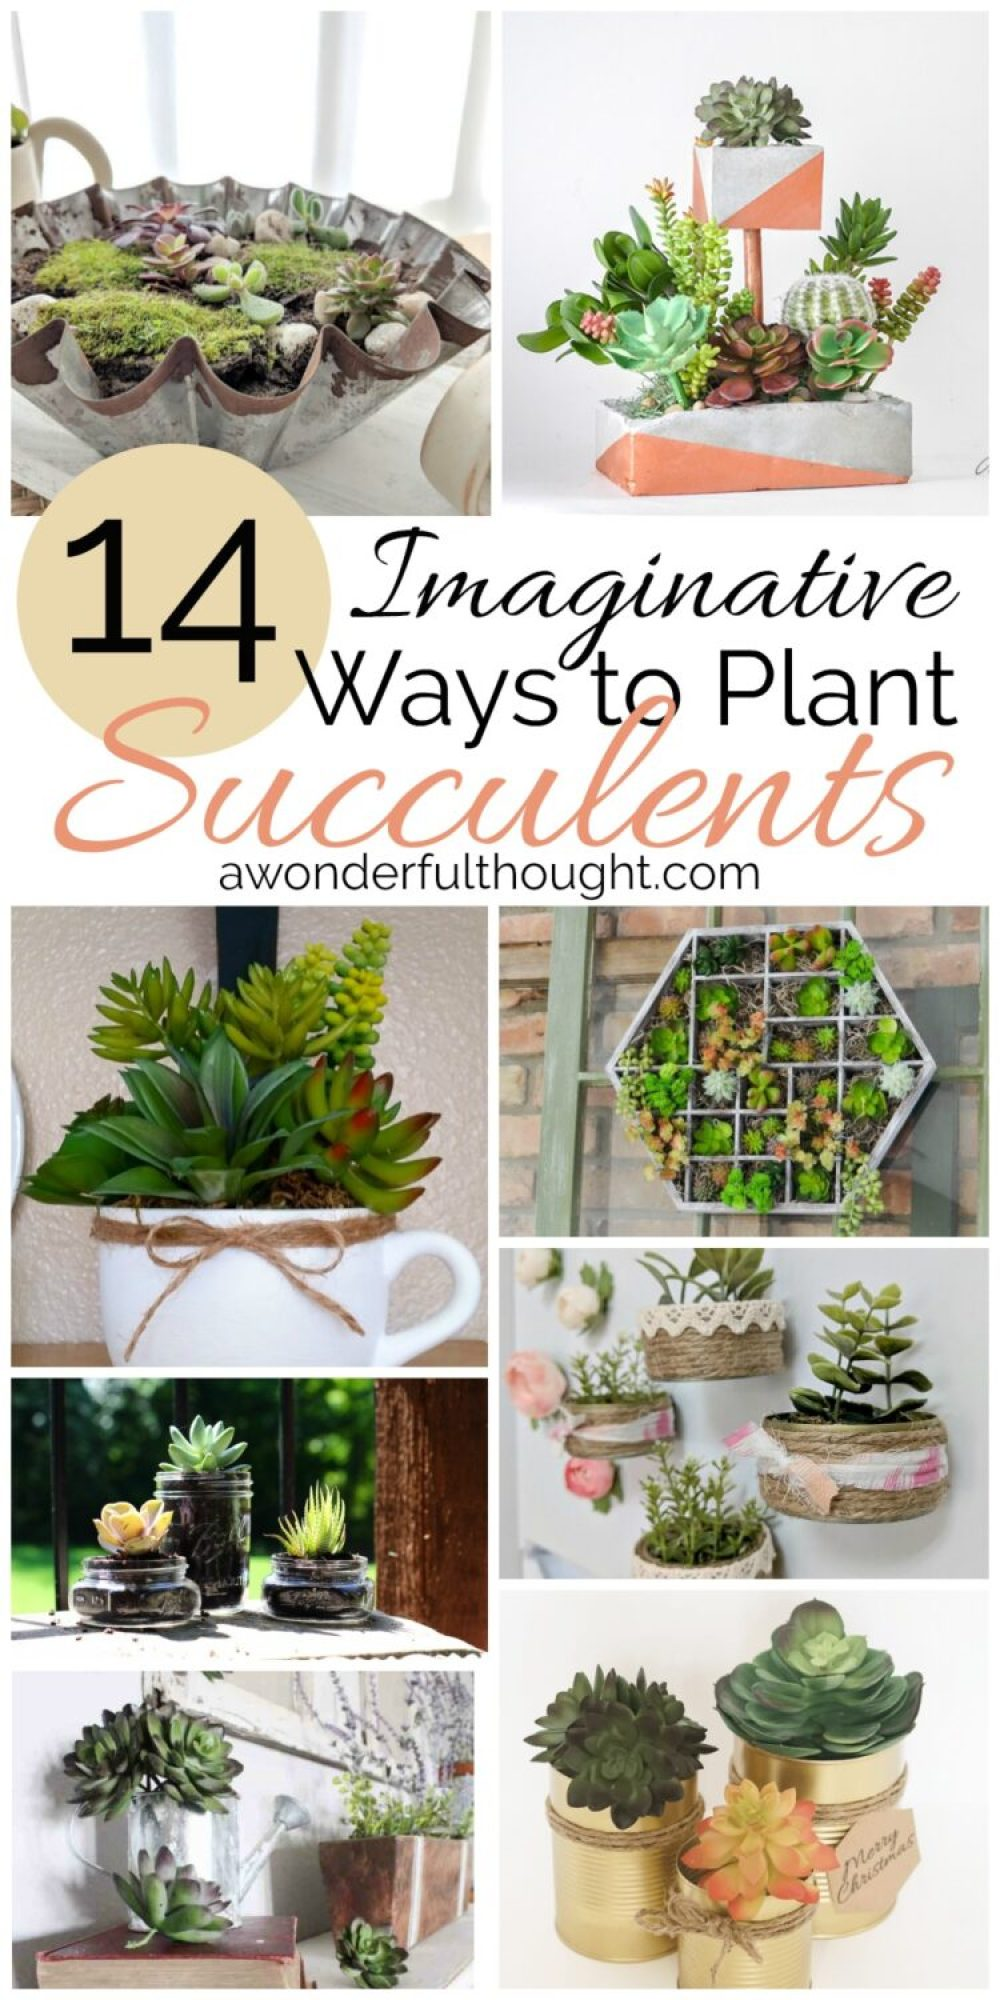 Imaginative Ways To Plant Succulents #Succulents #Succulentplanters #Succulentdecor #Awonderfulthought